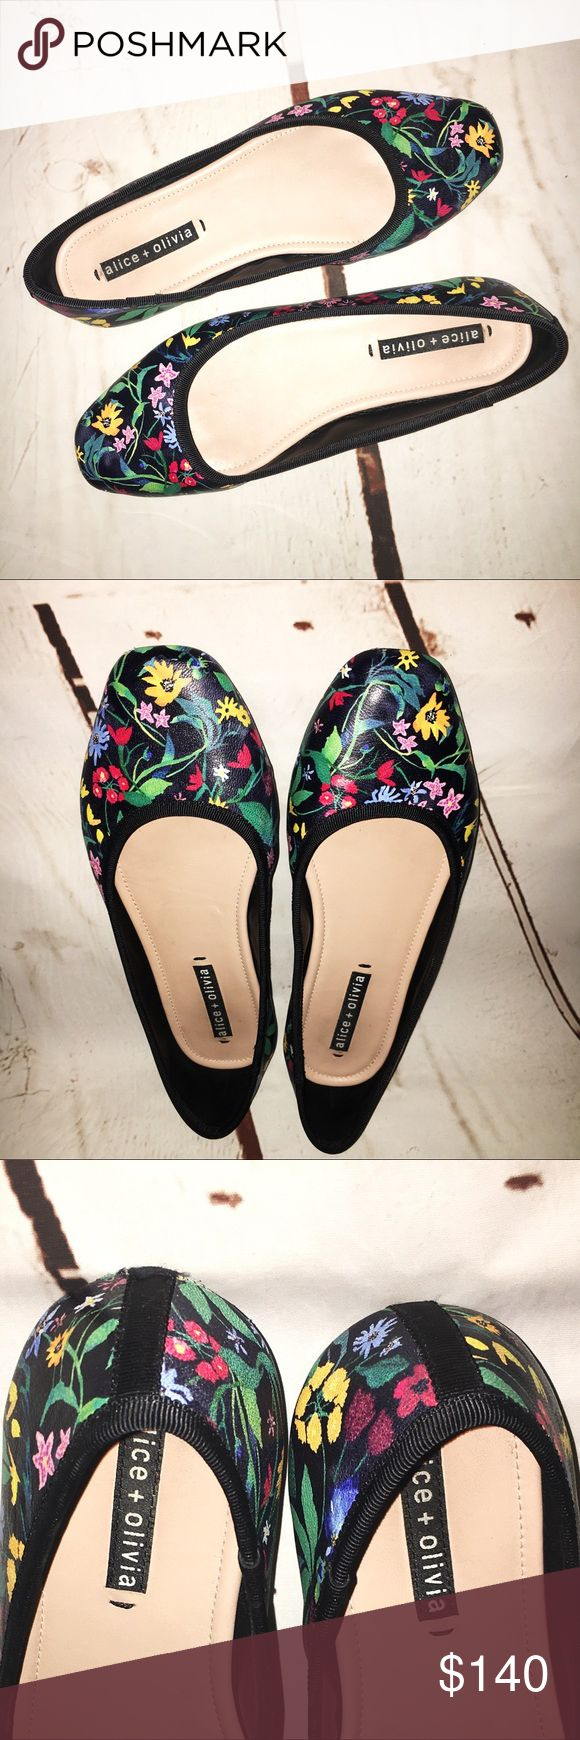 Alice + Olivia Whitney Floral Flats EUC - absolutely spotless condition (only ever worn once). Nappa floral leather upper. Slip on style. Leather lining, leather sole. Passed insole - super comfortable. True to size. Alice + Olivia Shoes Flats & Loafers